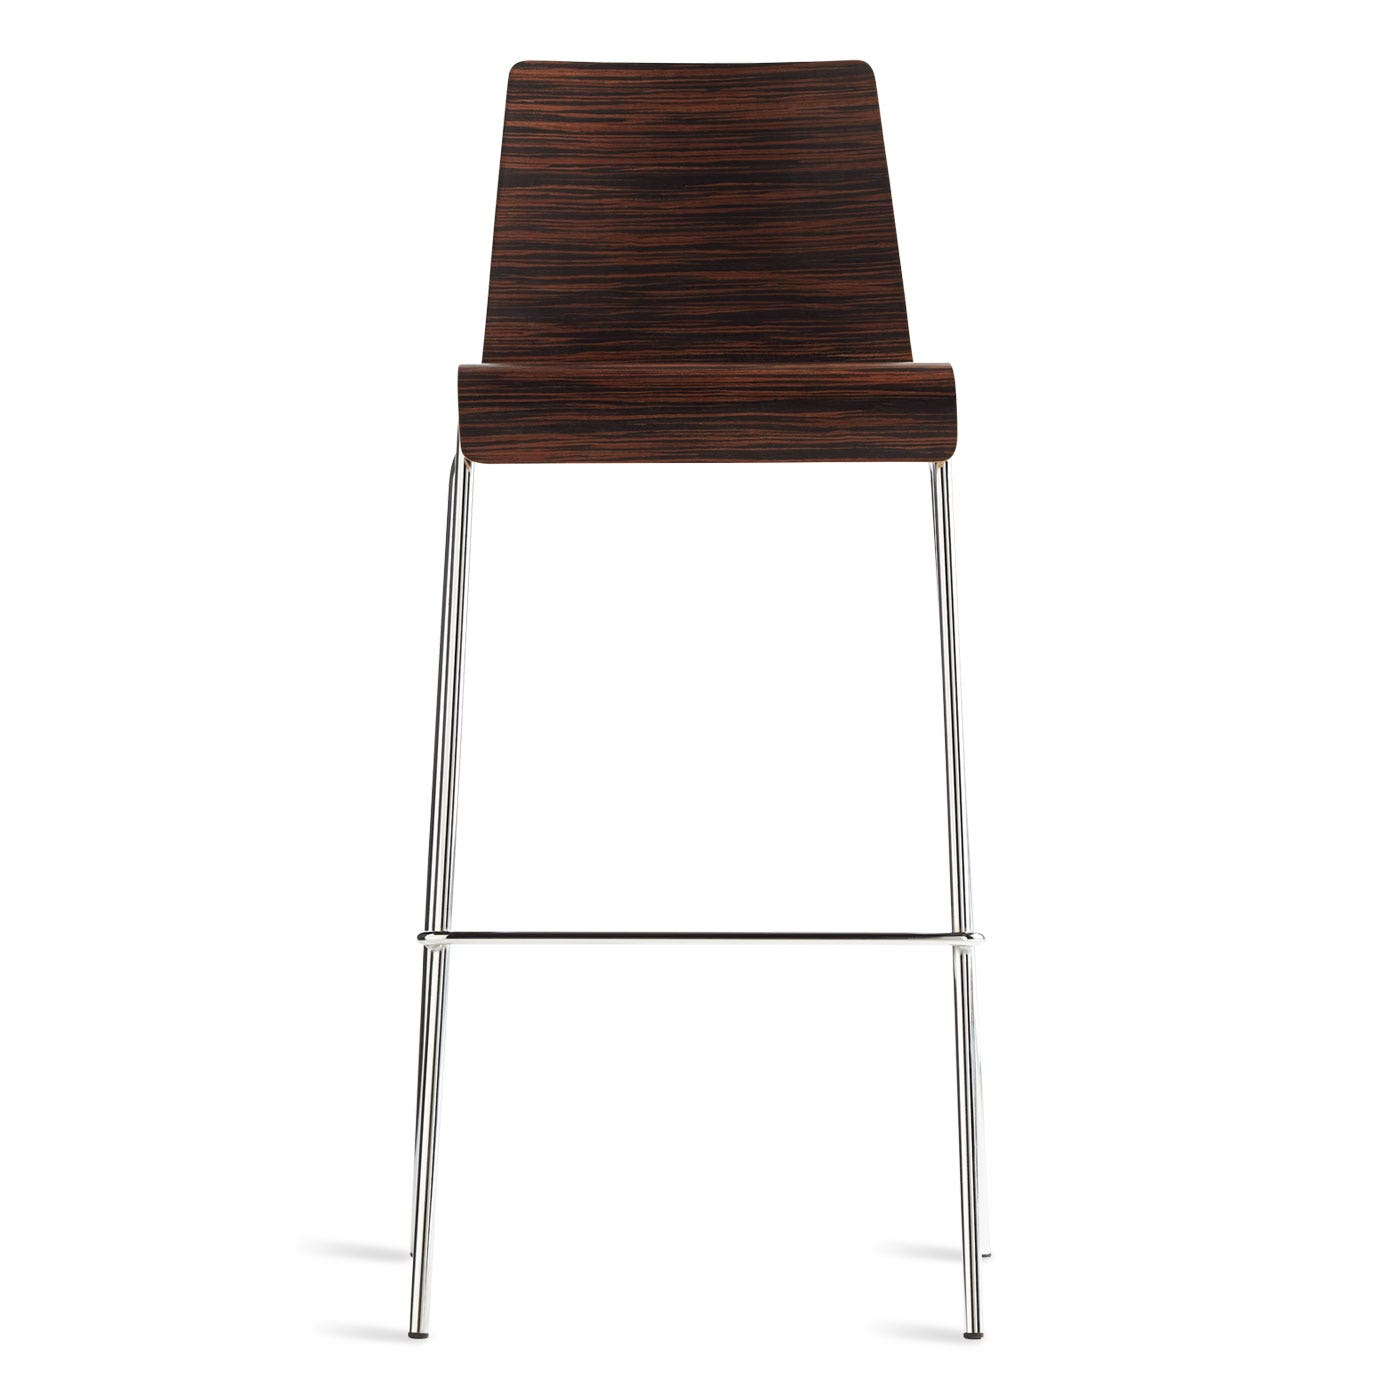 Wood Bar Stools Imperial Wood Bar Stool Spectator Chair